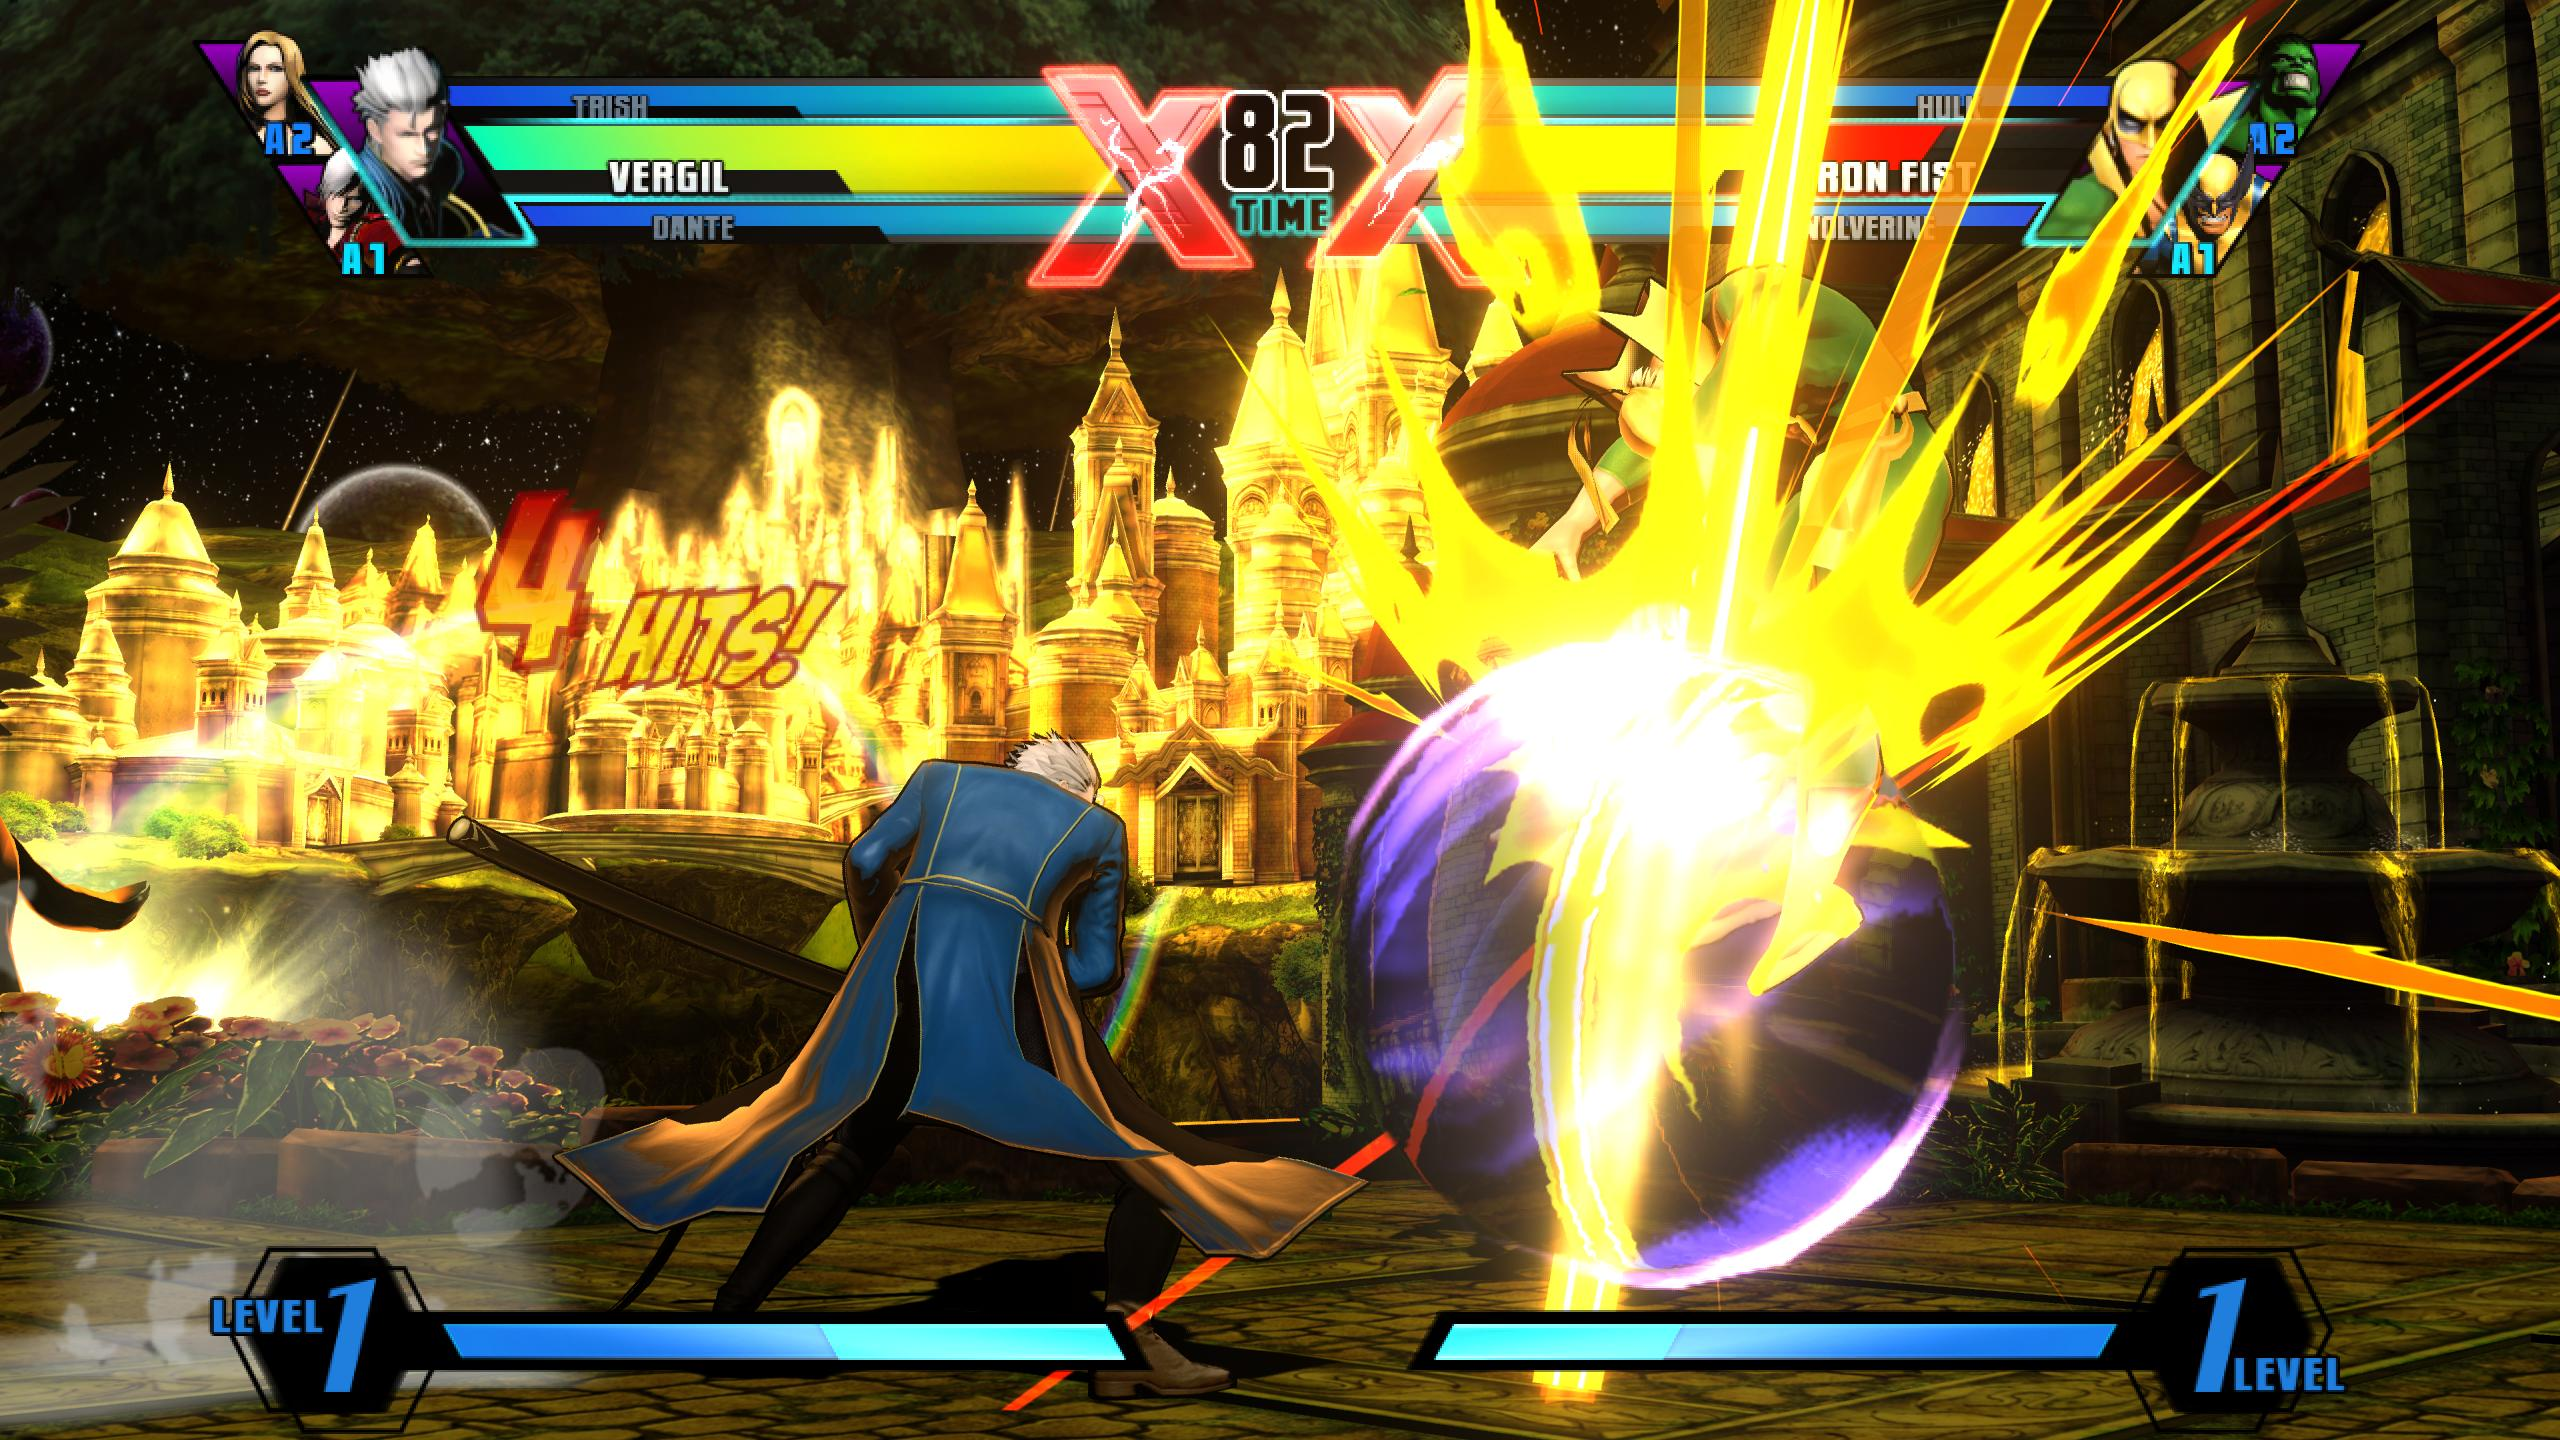 Vergil dans Ultimate Marvel vs. Capcom 3 6150587405_01ab3488ee_o